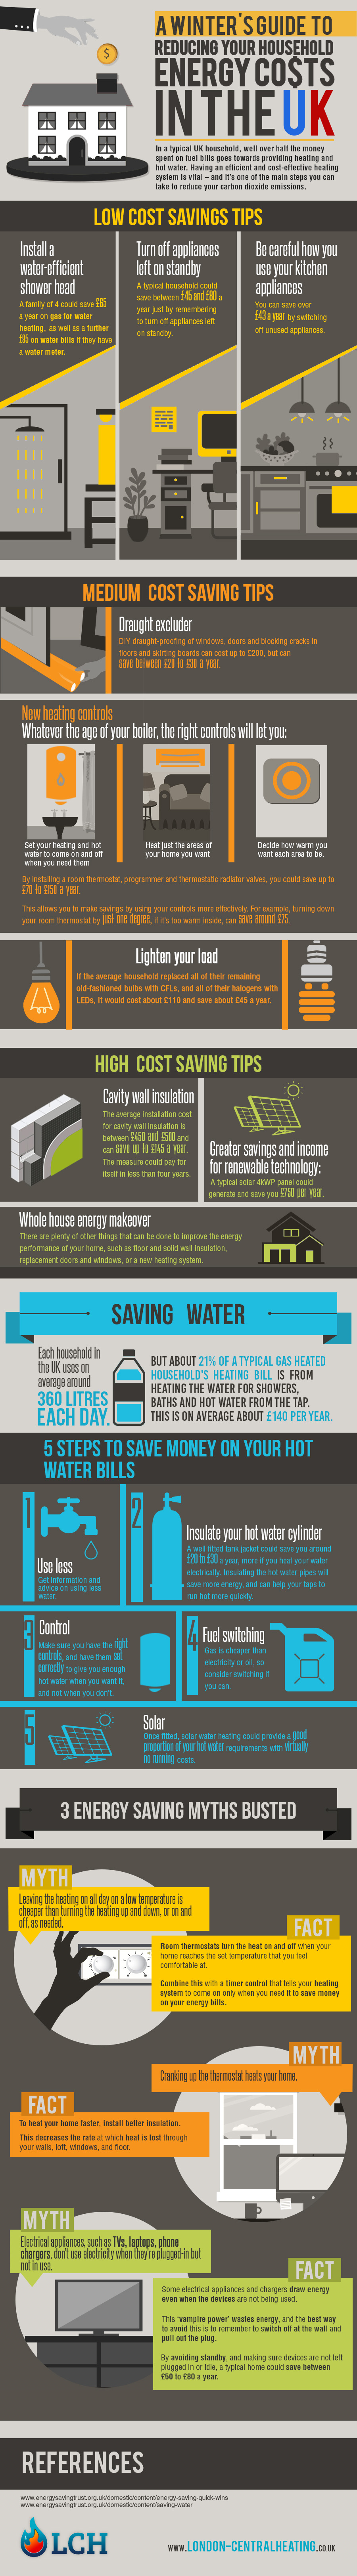 Reduce Household Energy Costs in the UK